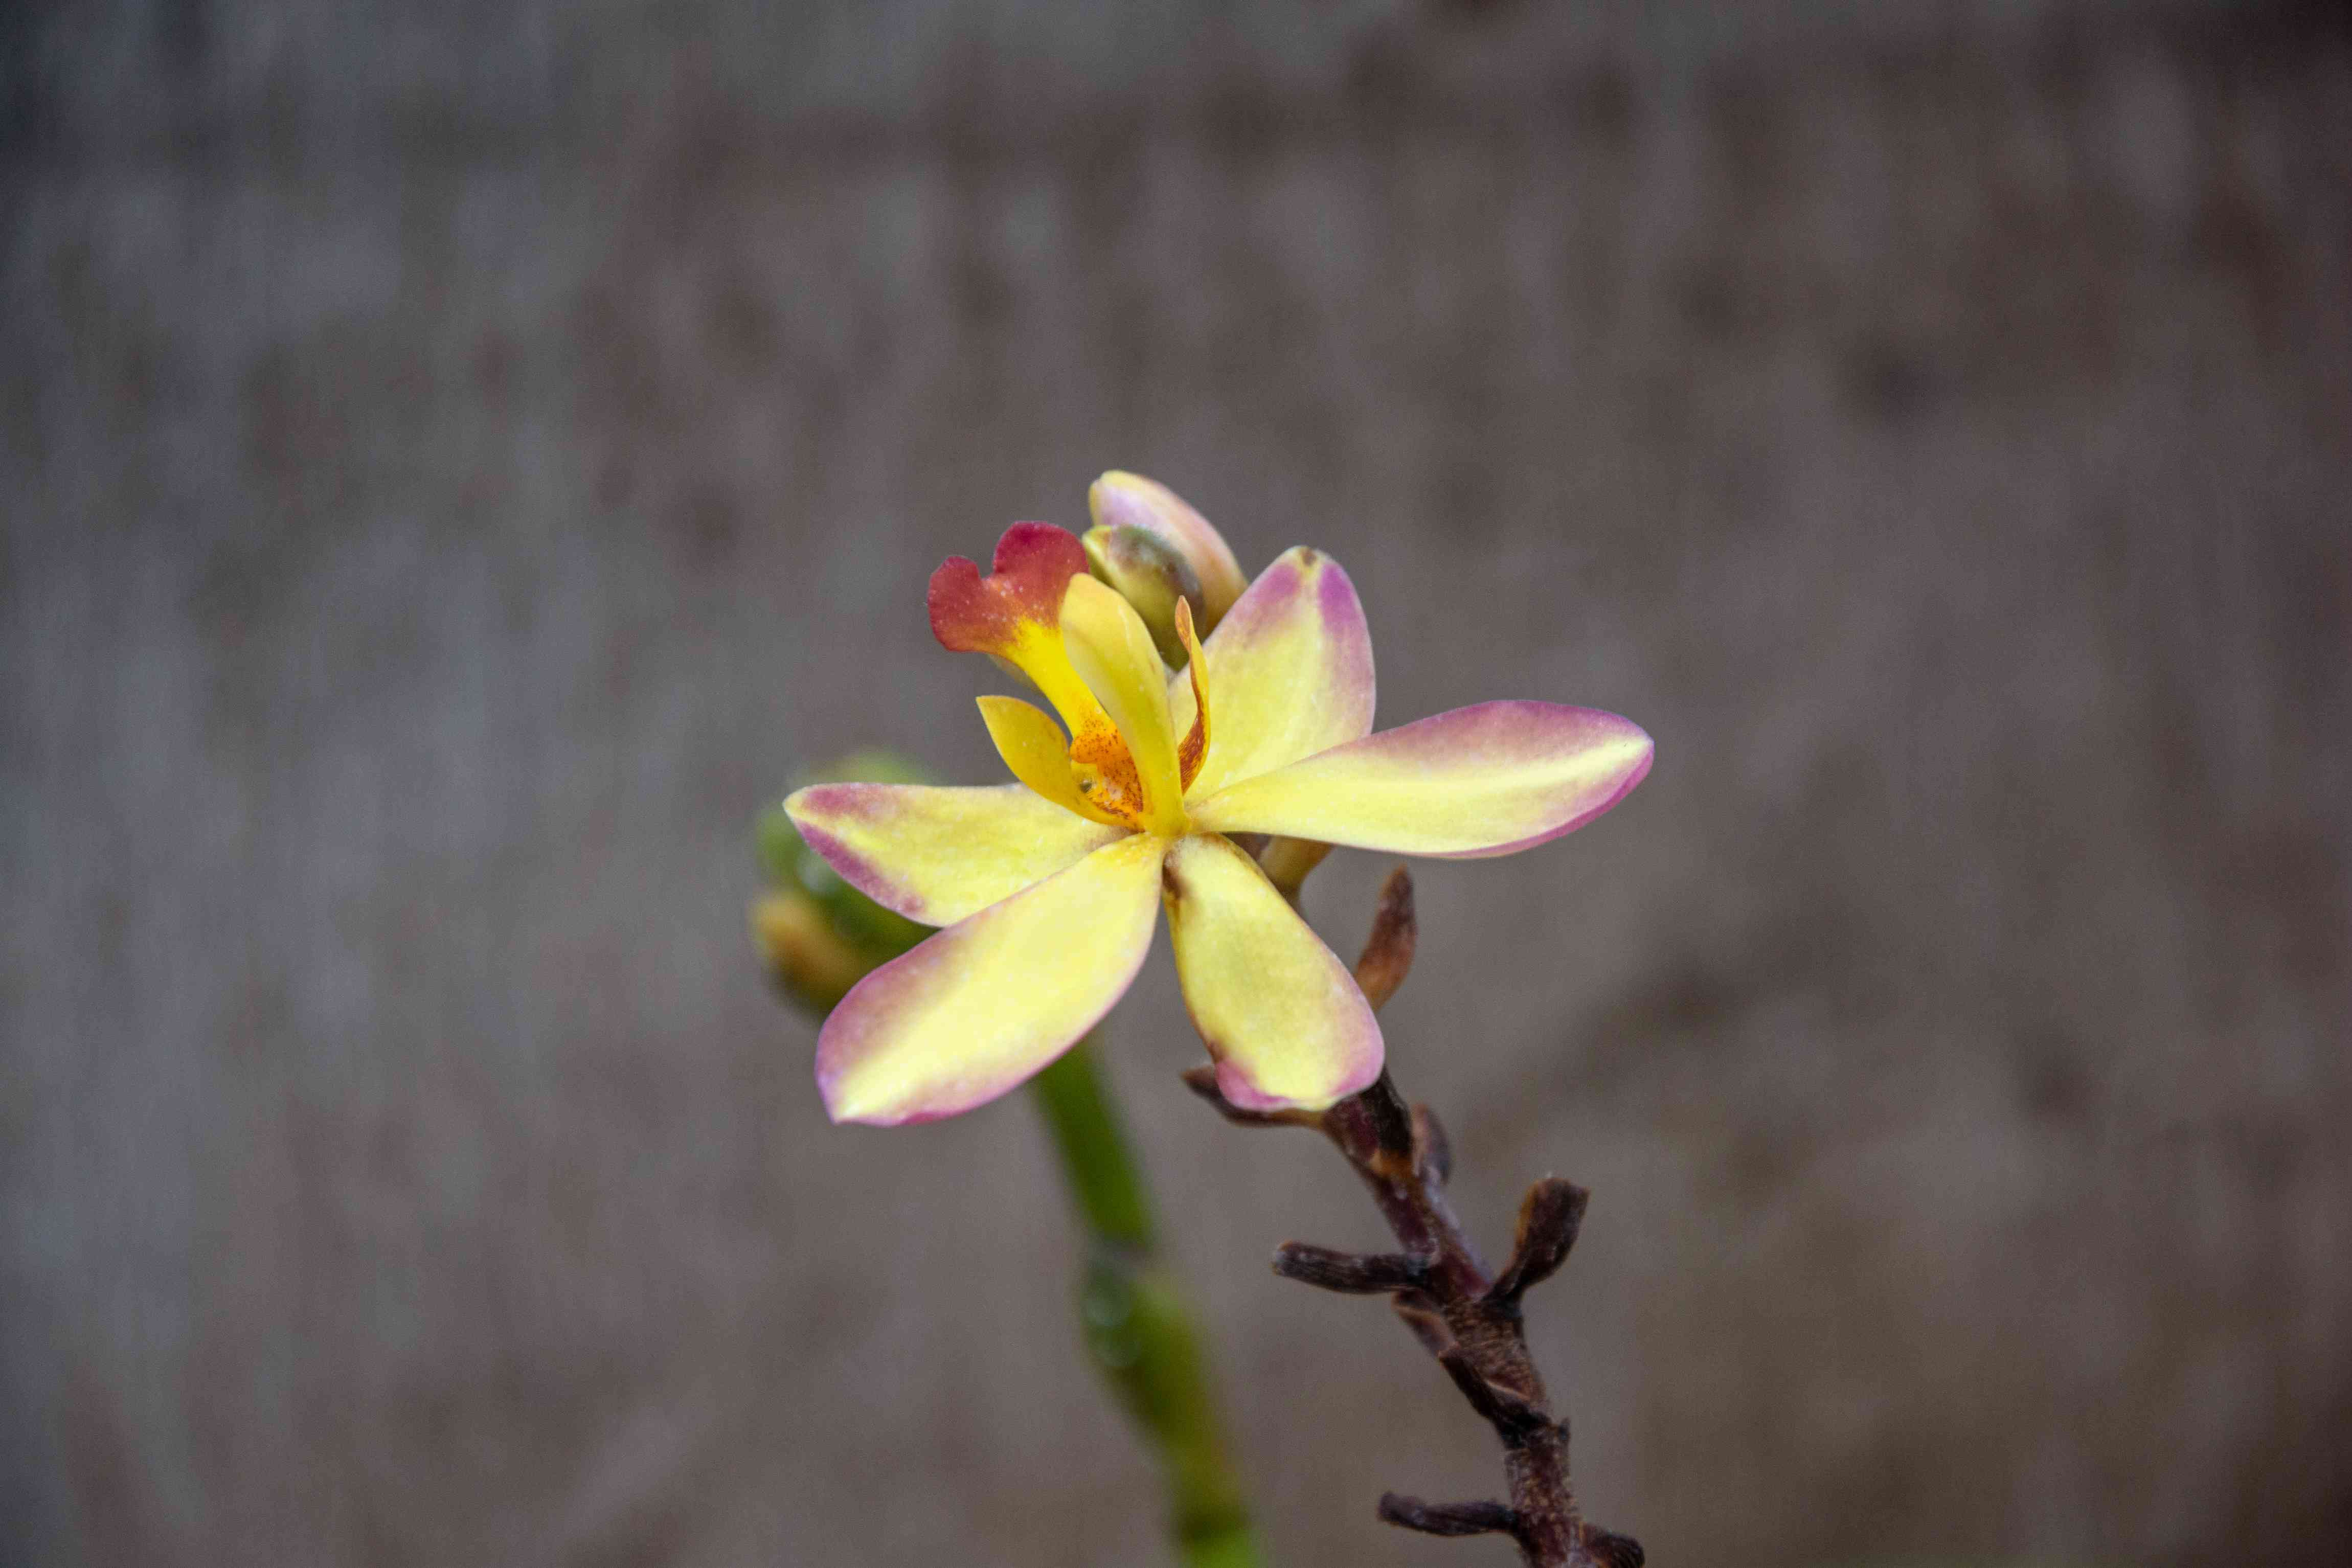 Spathoglottis orchid with yellow flower with pink tips on edge of stem closeup